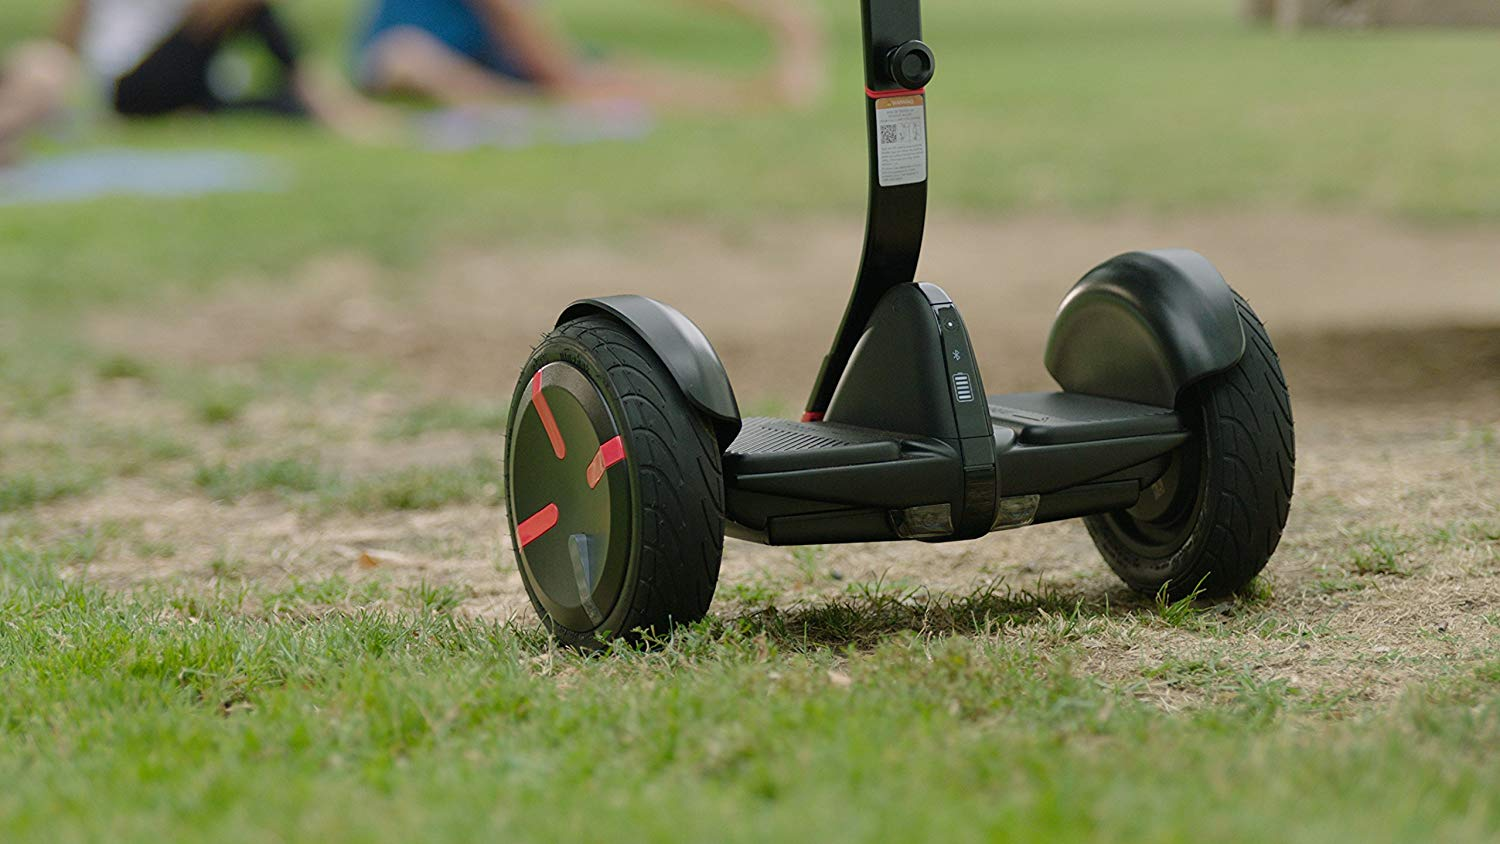 Today only, Segway's miniPro Personal Transporter: $350 (Refurb, Orig. $1299)